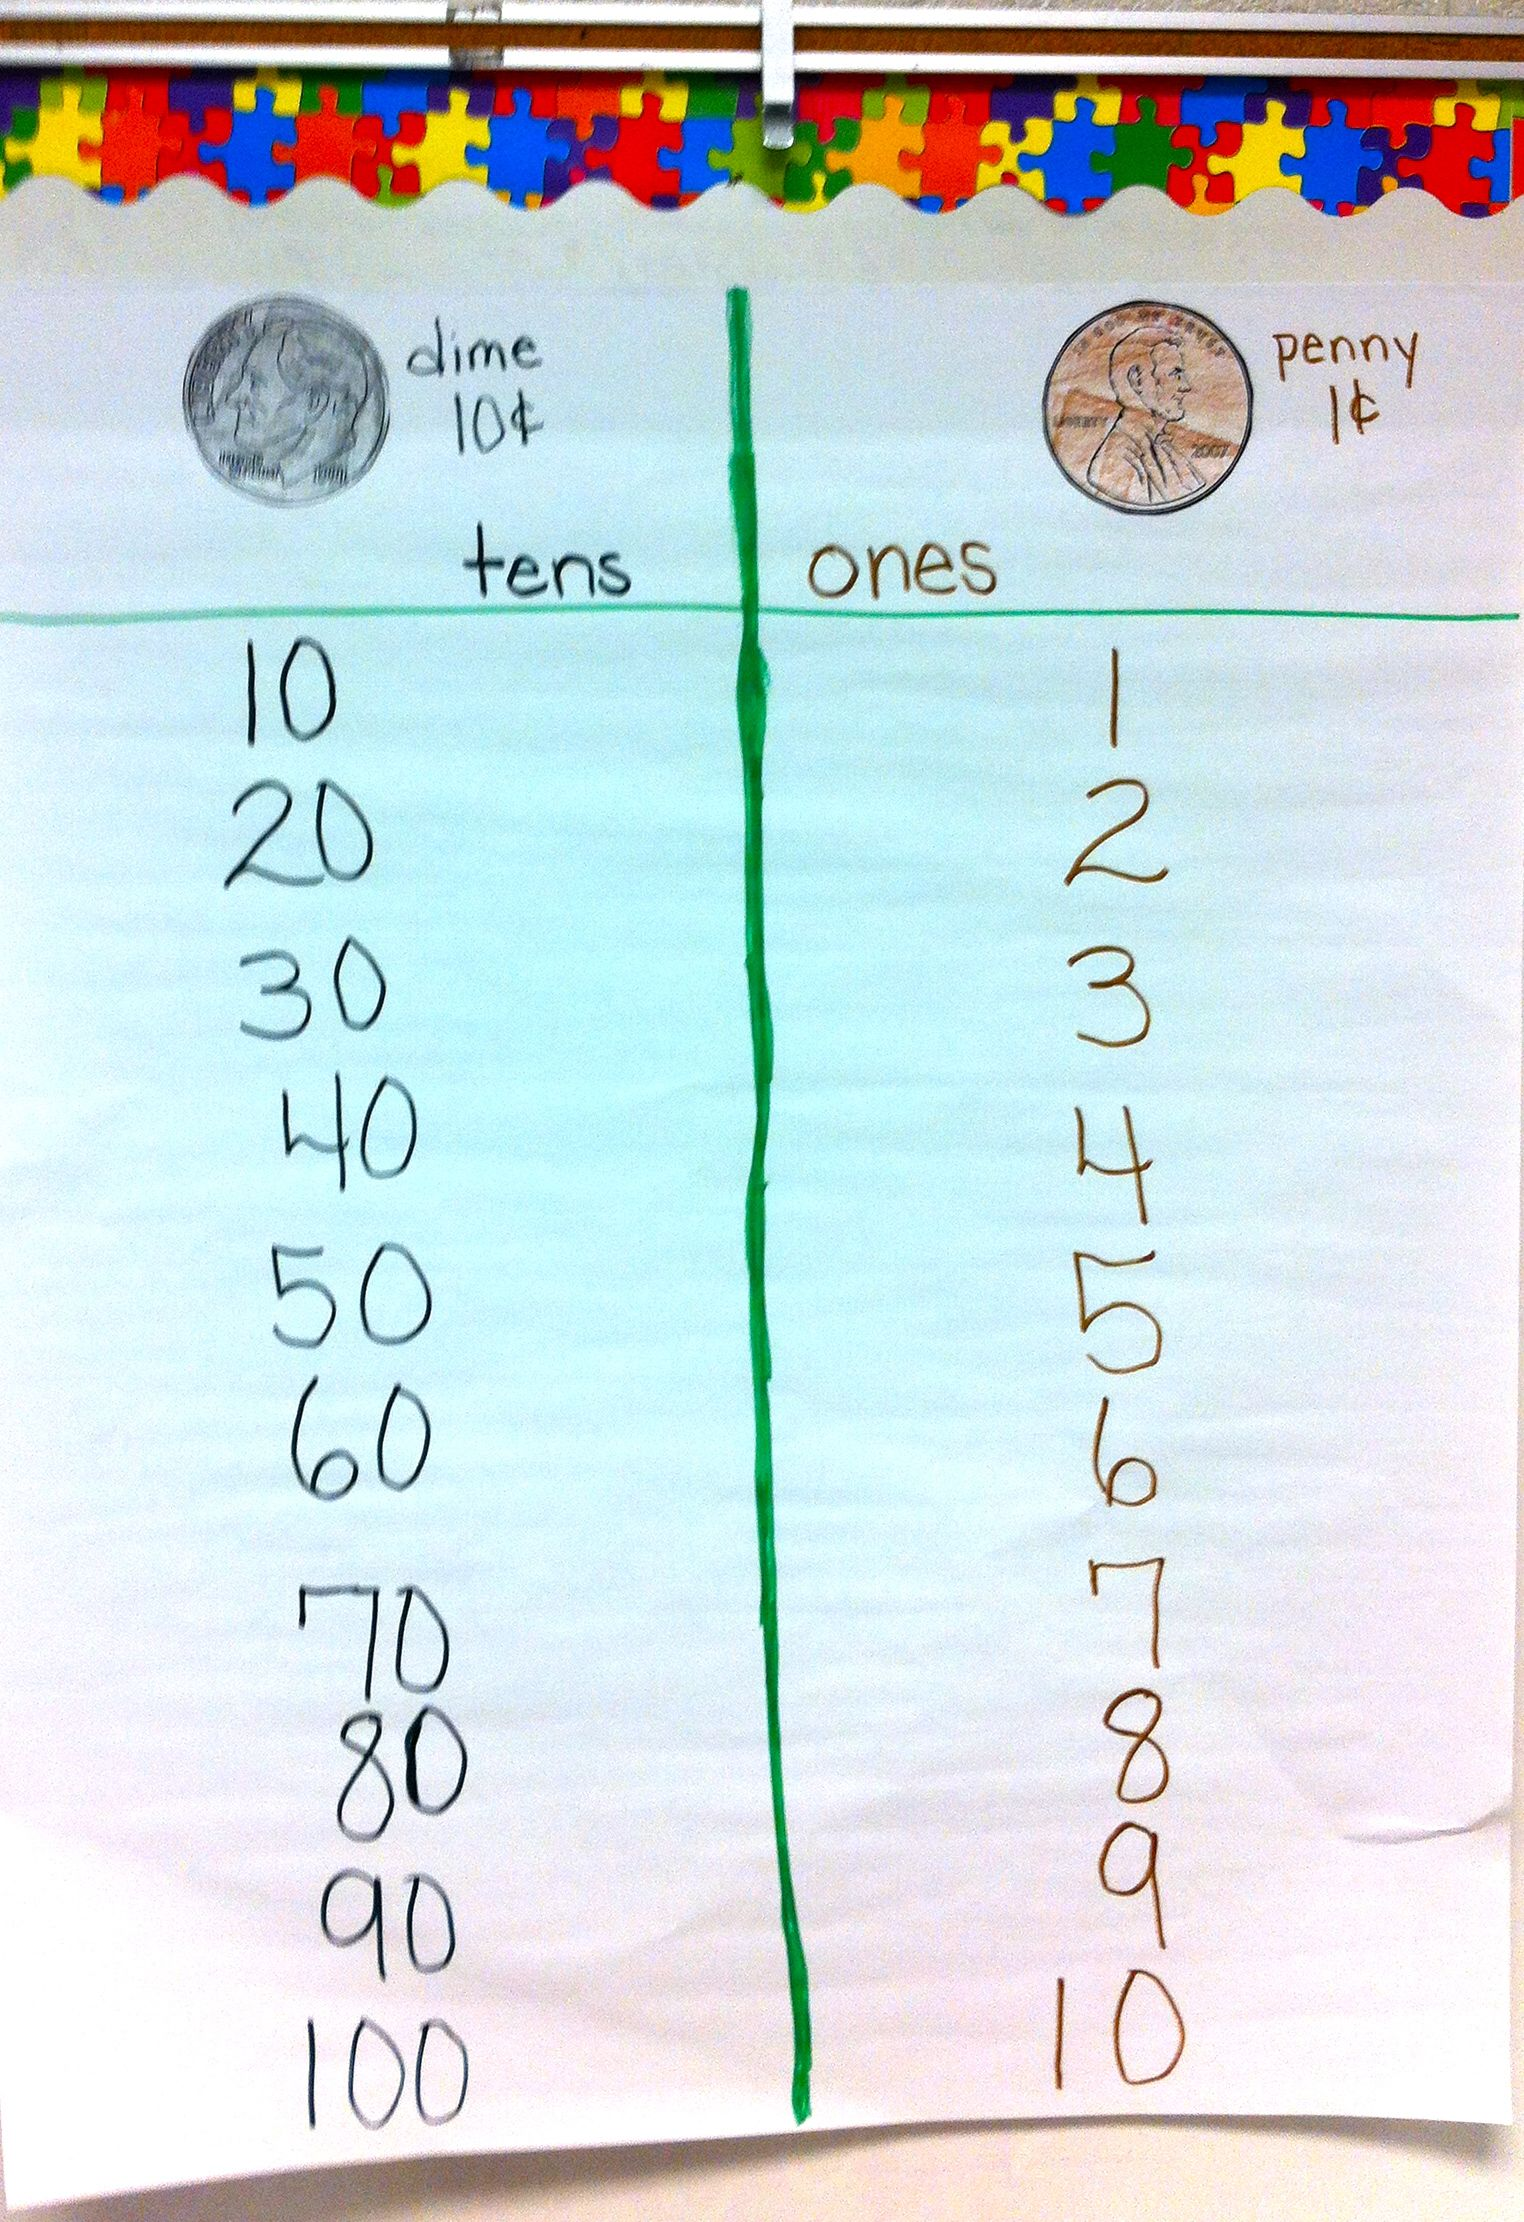 hight resolution of Pin by Marilyn Anderson on CR Anchor charts - general   Teaching math